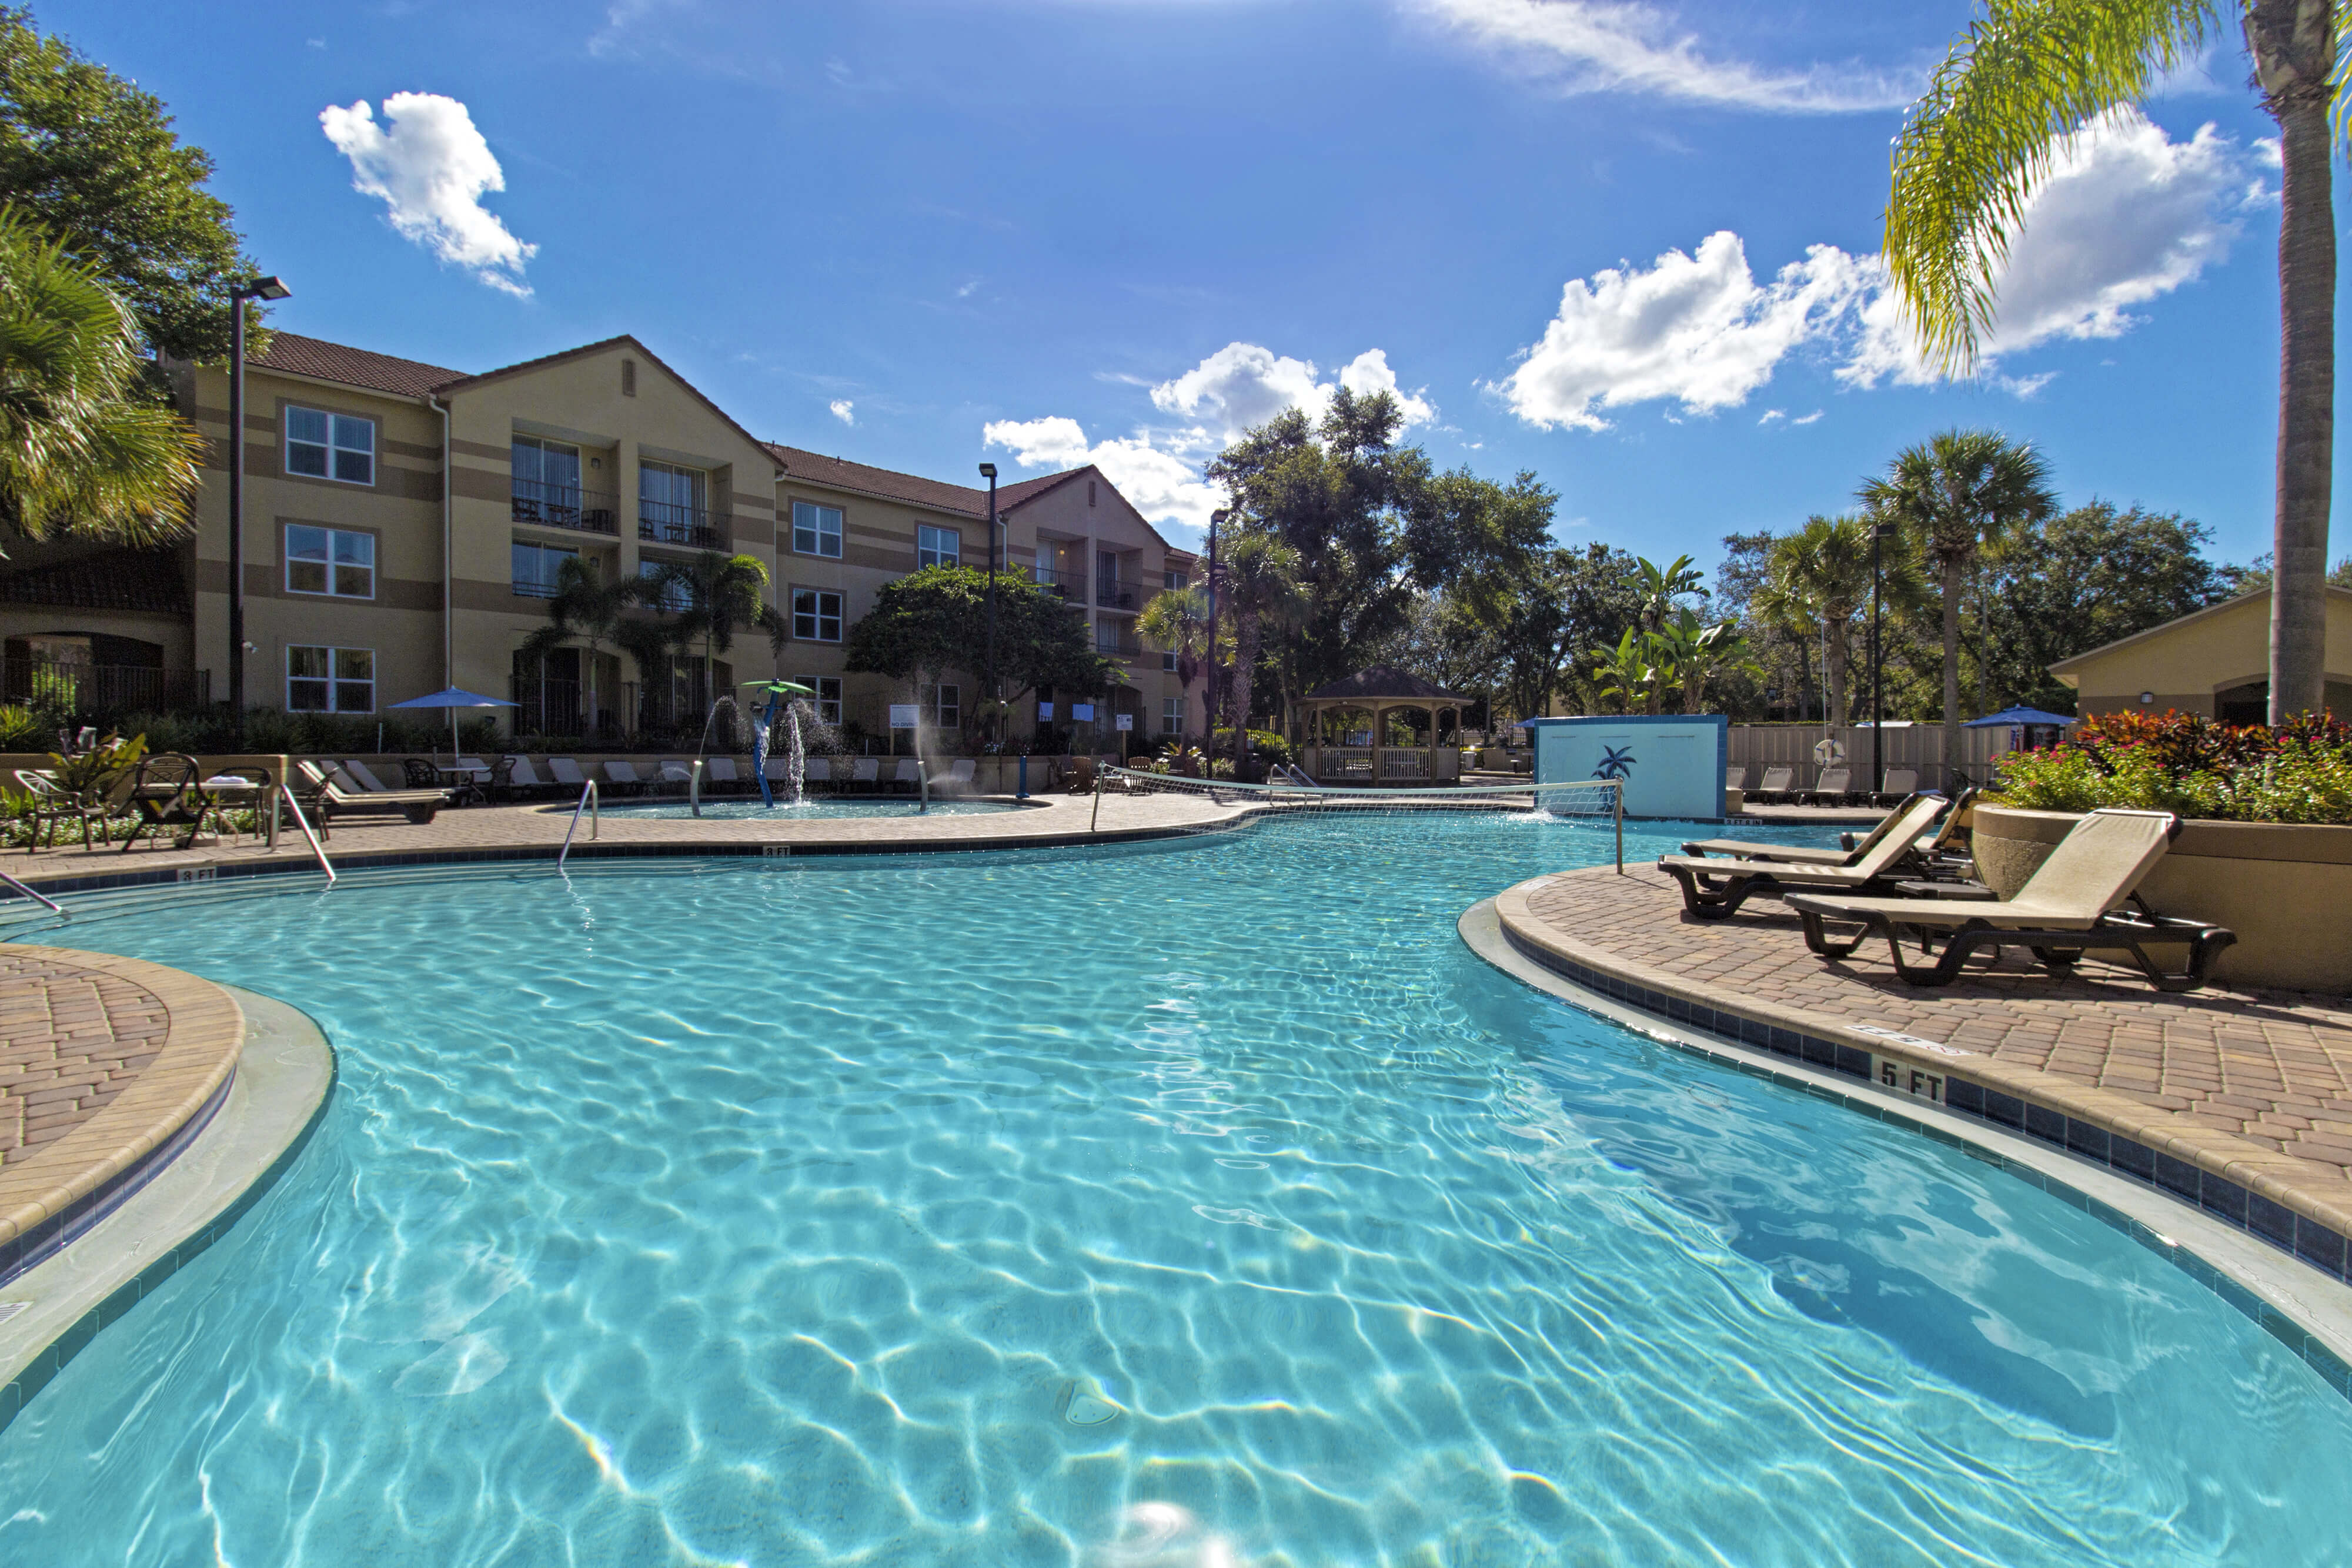 Large outdoor pool with volleyball net | Westgate Blue Tree Resort | Westgate Resorts Orlando